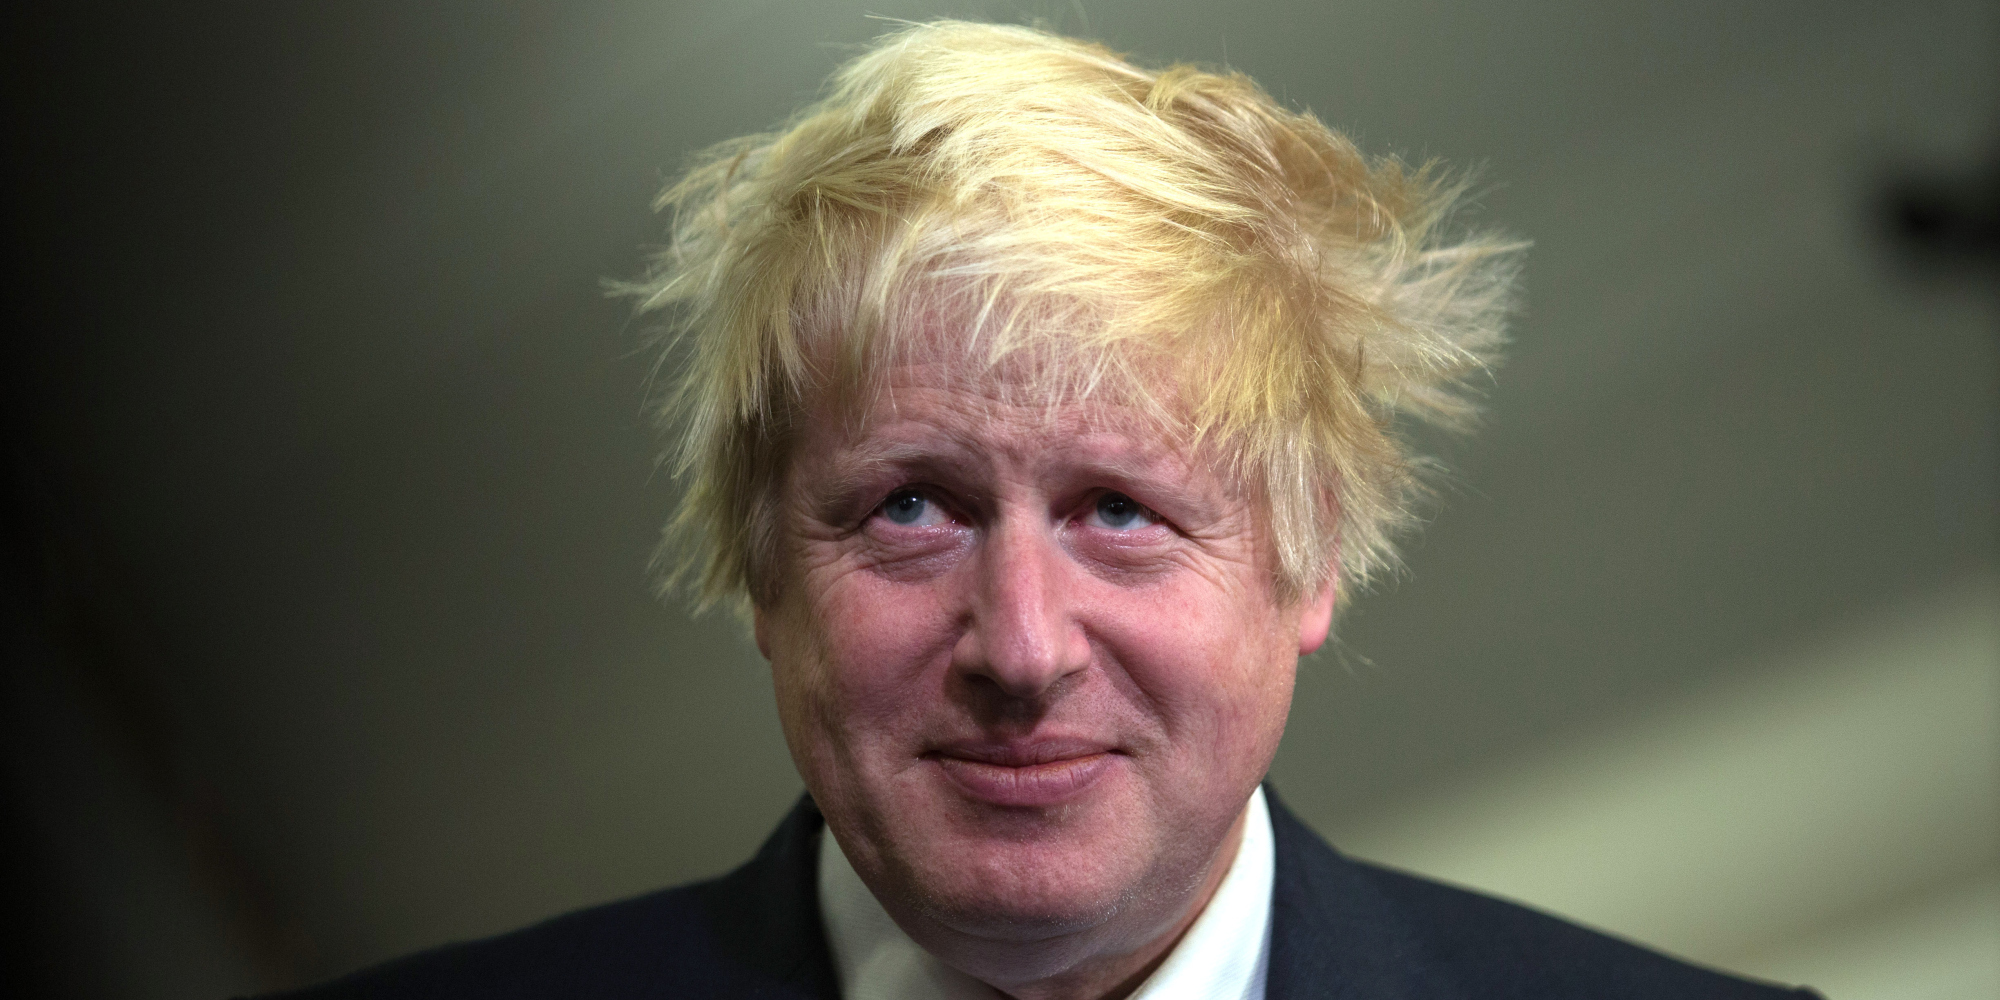 boris johnson - photo #26